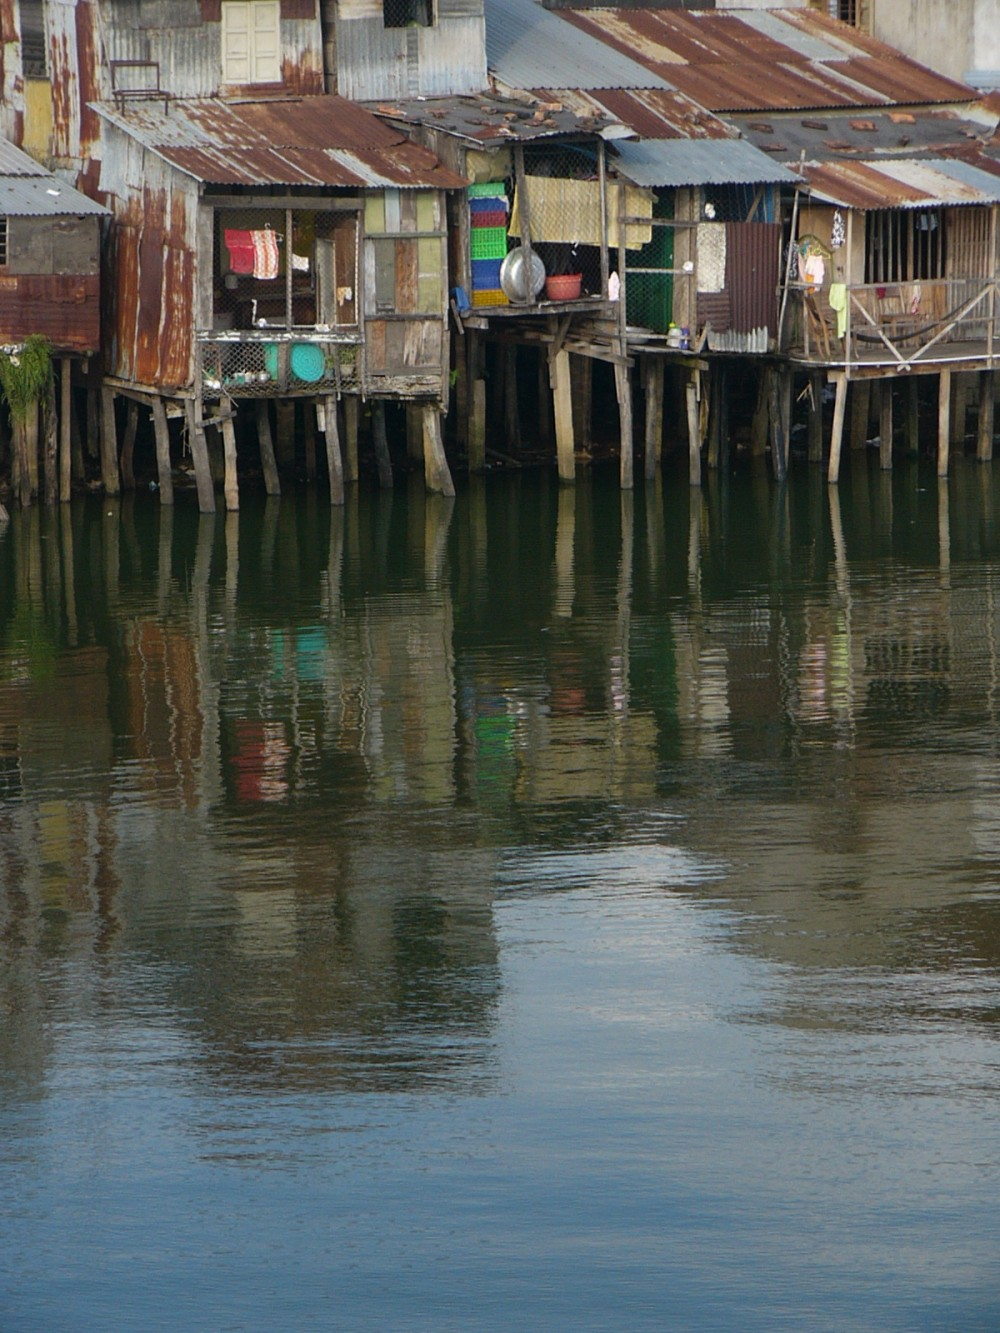 Waterfront Slums in Vietnam